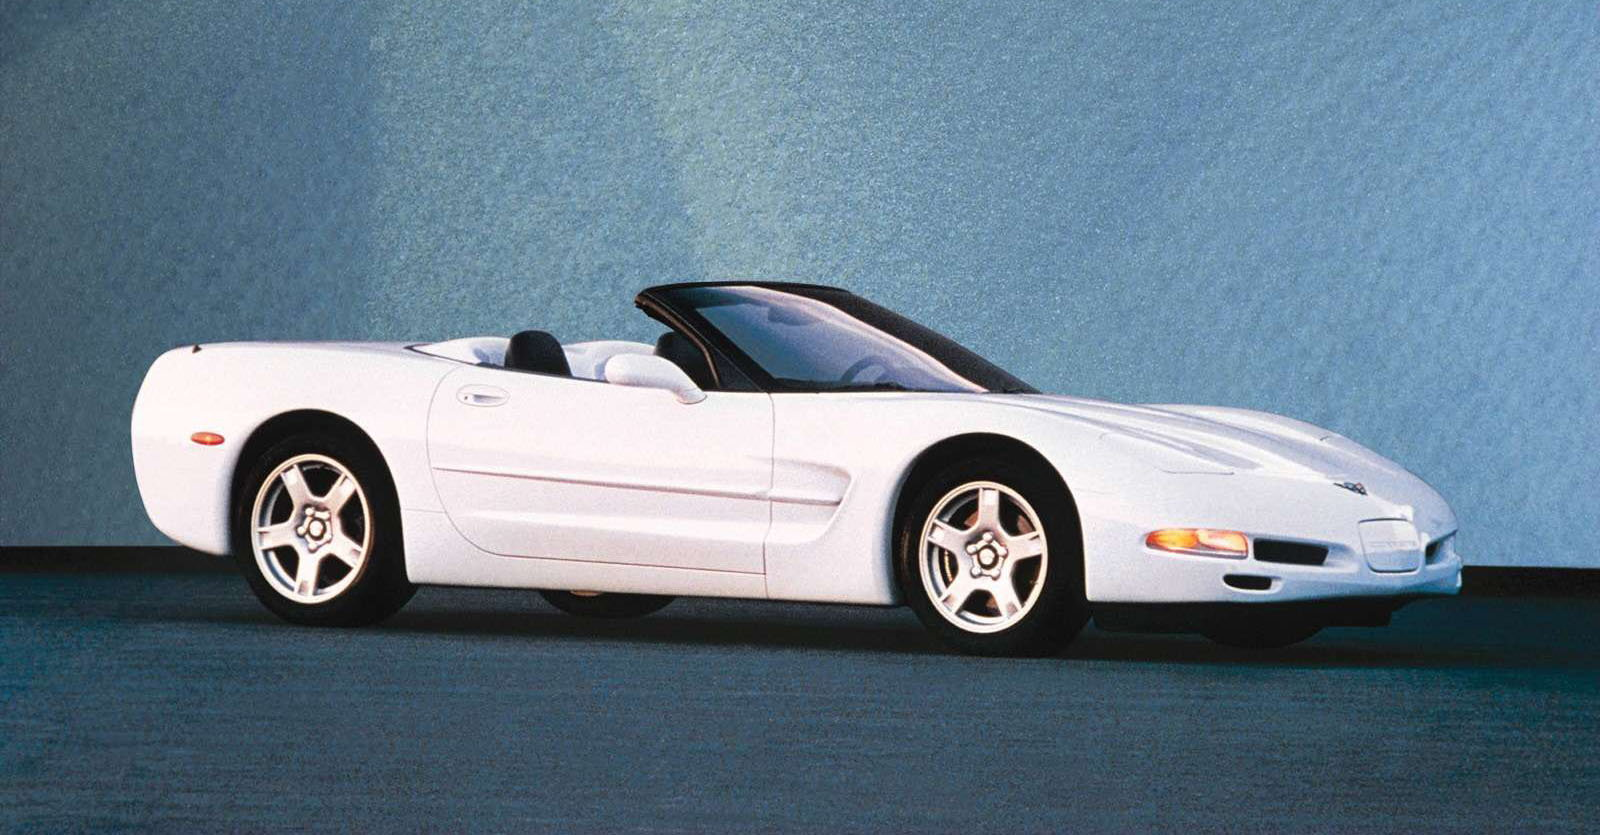 Chevrolet Corvette C Wallpaper